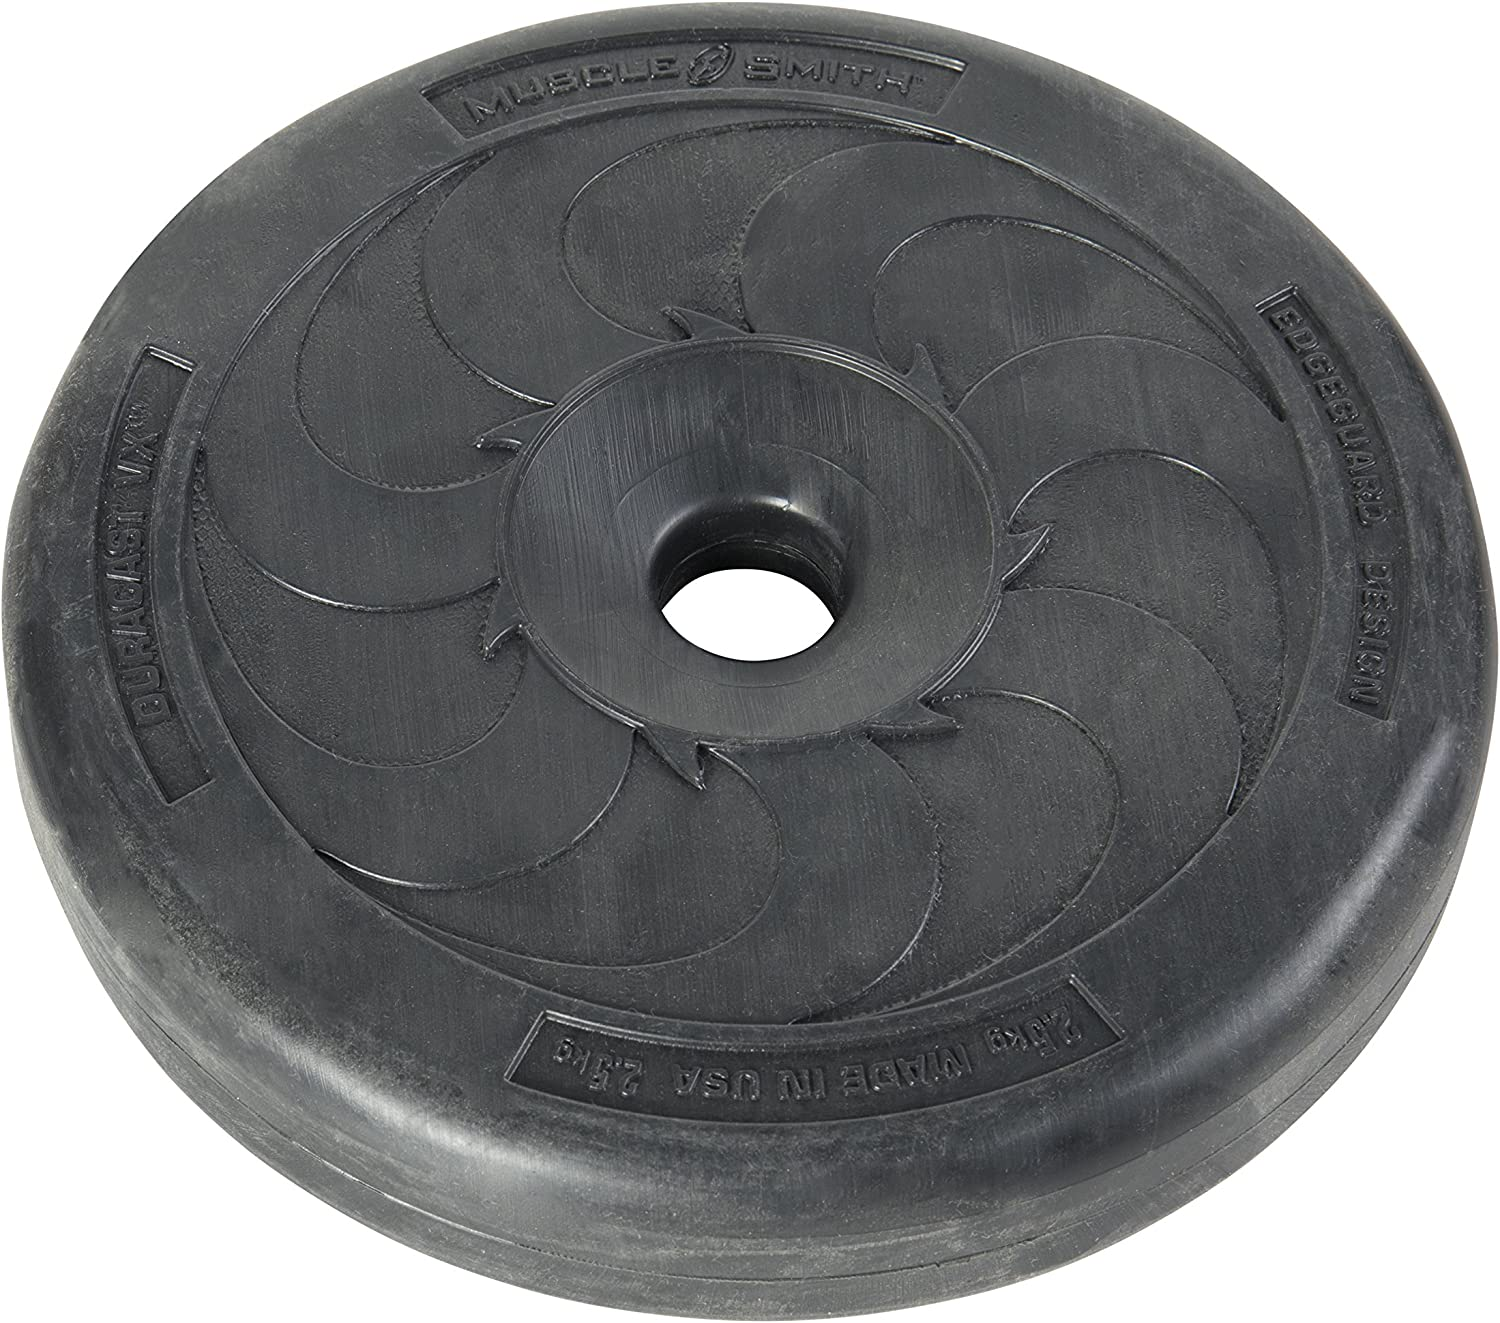 US Weight Duracast Weight Plates for 1inch Diameter Bars – 2.5 kg (22.04 pounds)